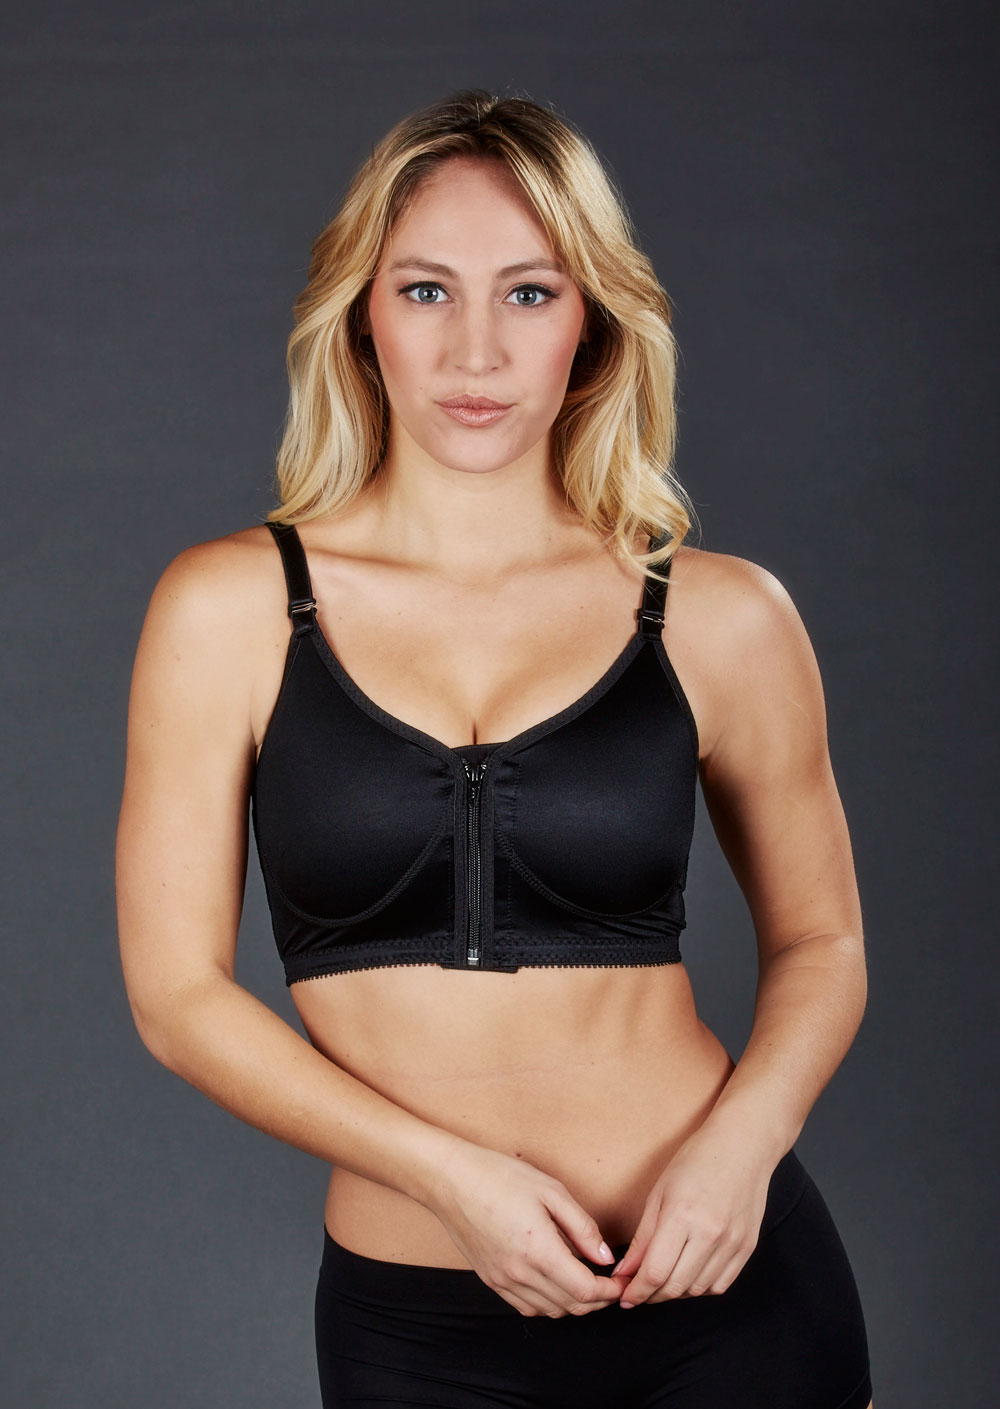 0831342f7 Caromed Surgical Bras - 2-8124 Post-Augmentation Bra